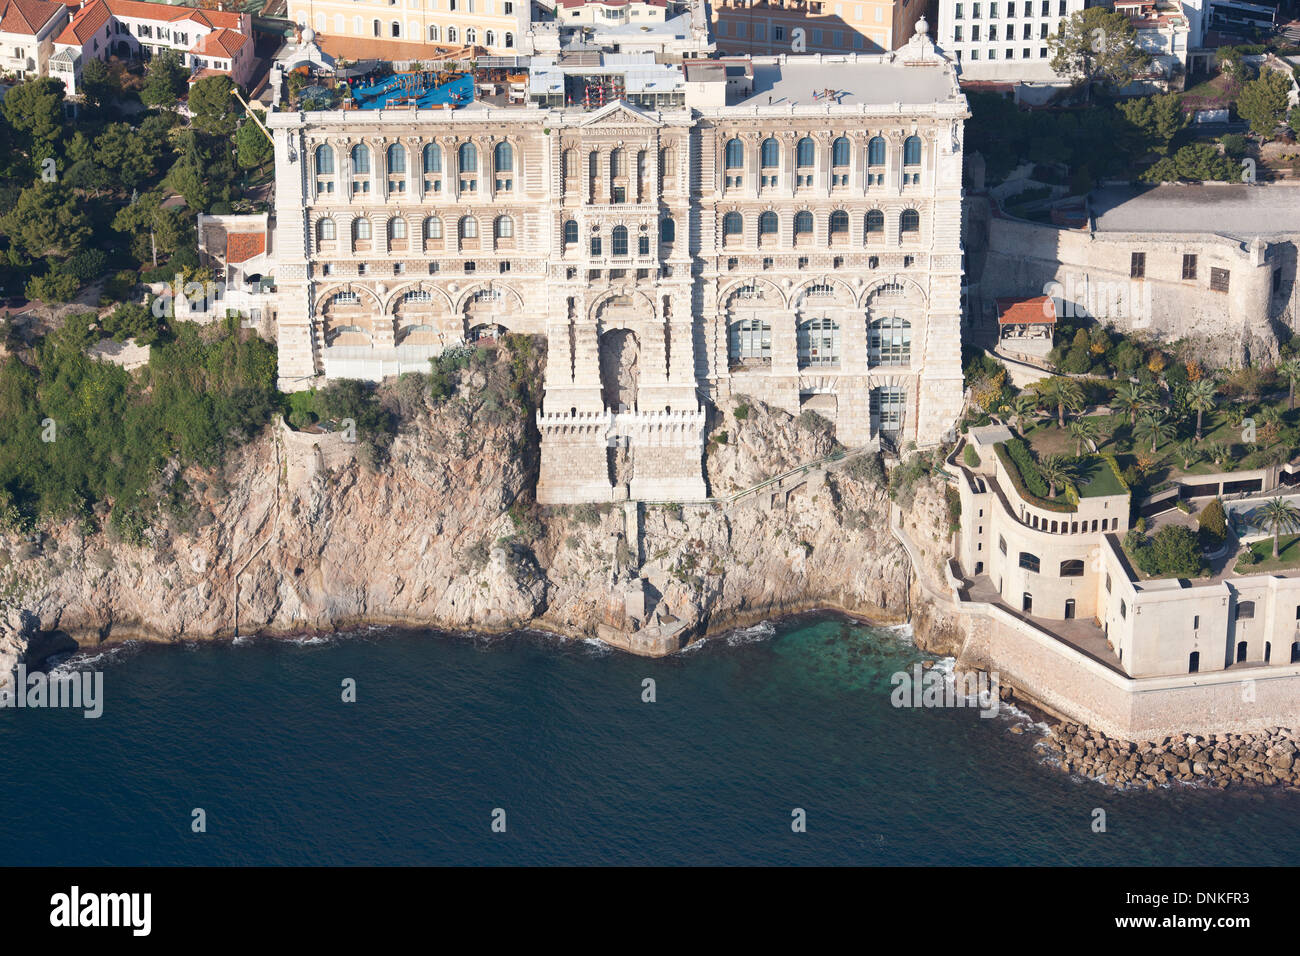 OCEANOGRAPHIC MUSEUM (aerial view). Historic museum on top of a cliff in Monaco-Ville district. Principality of Monaco. - Stock Image